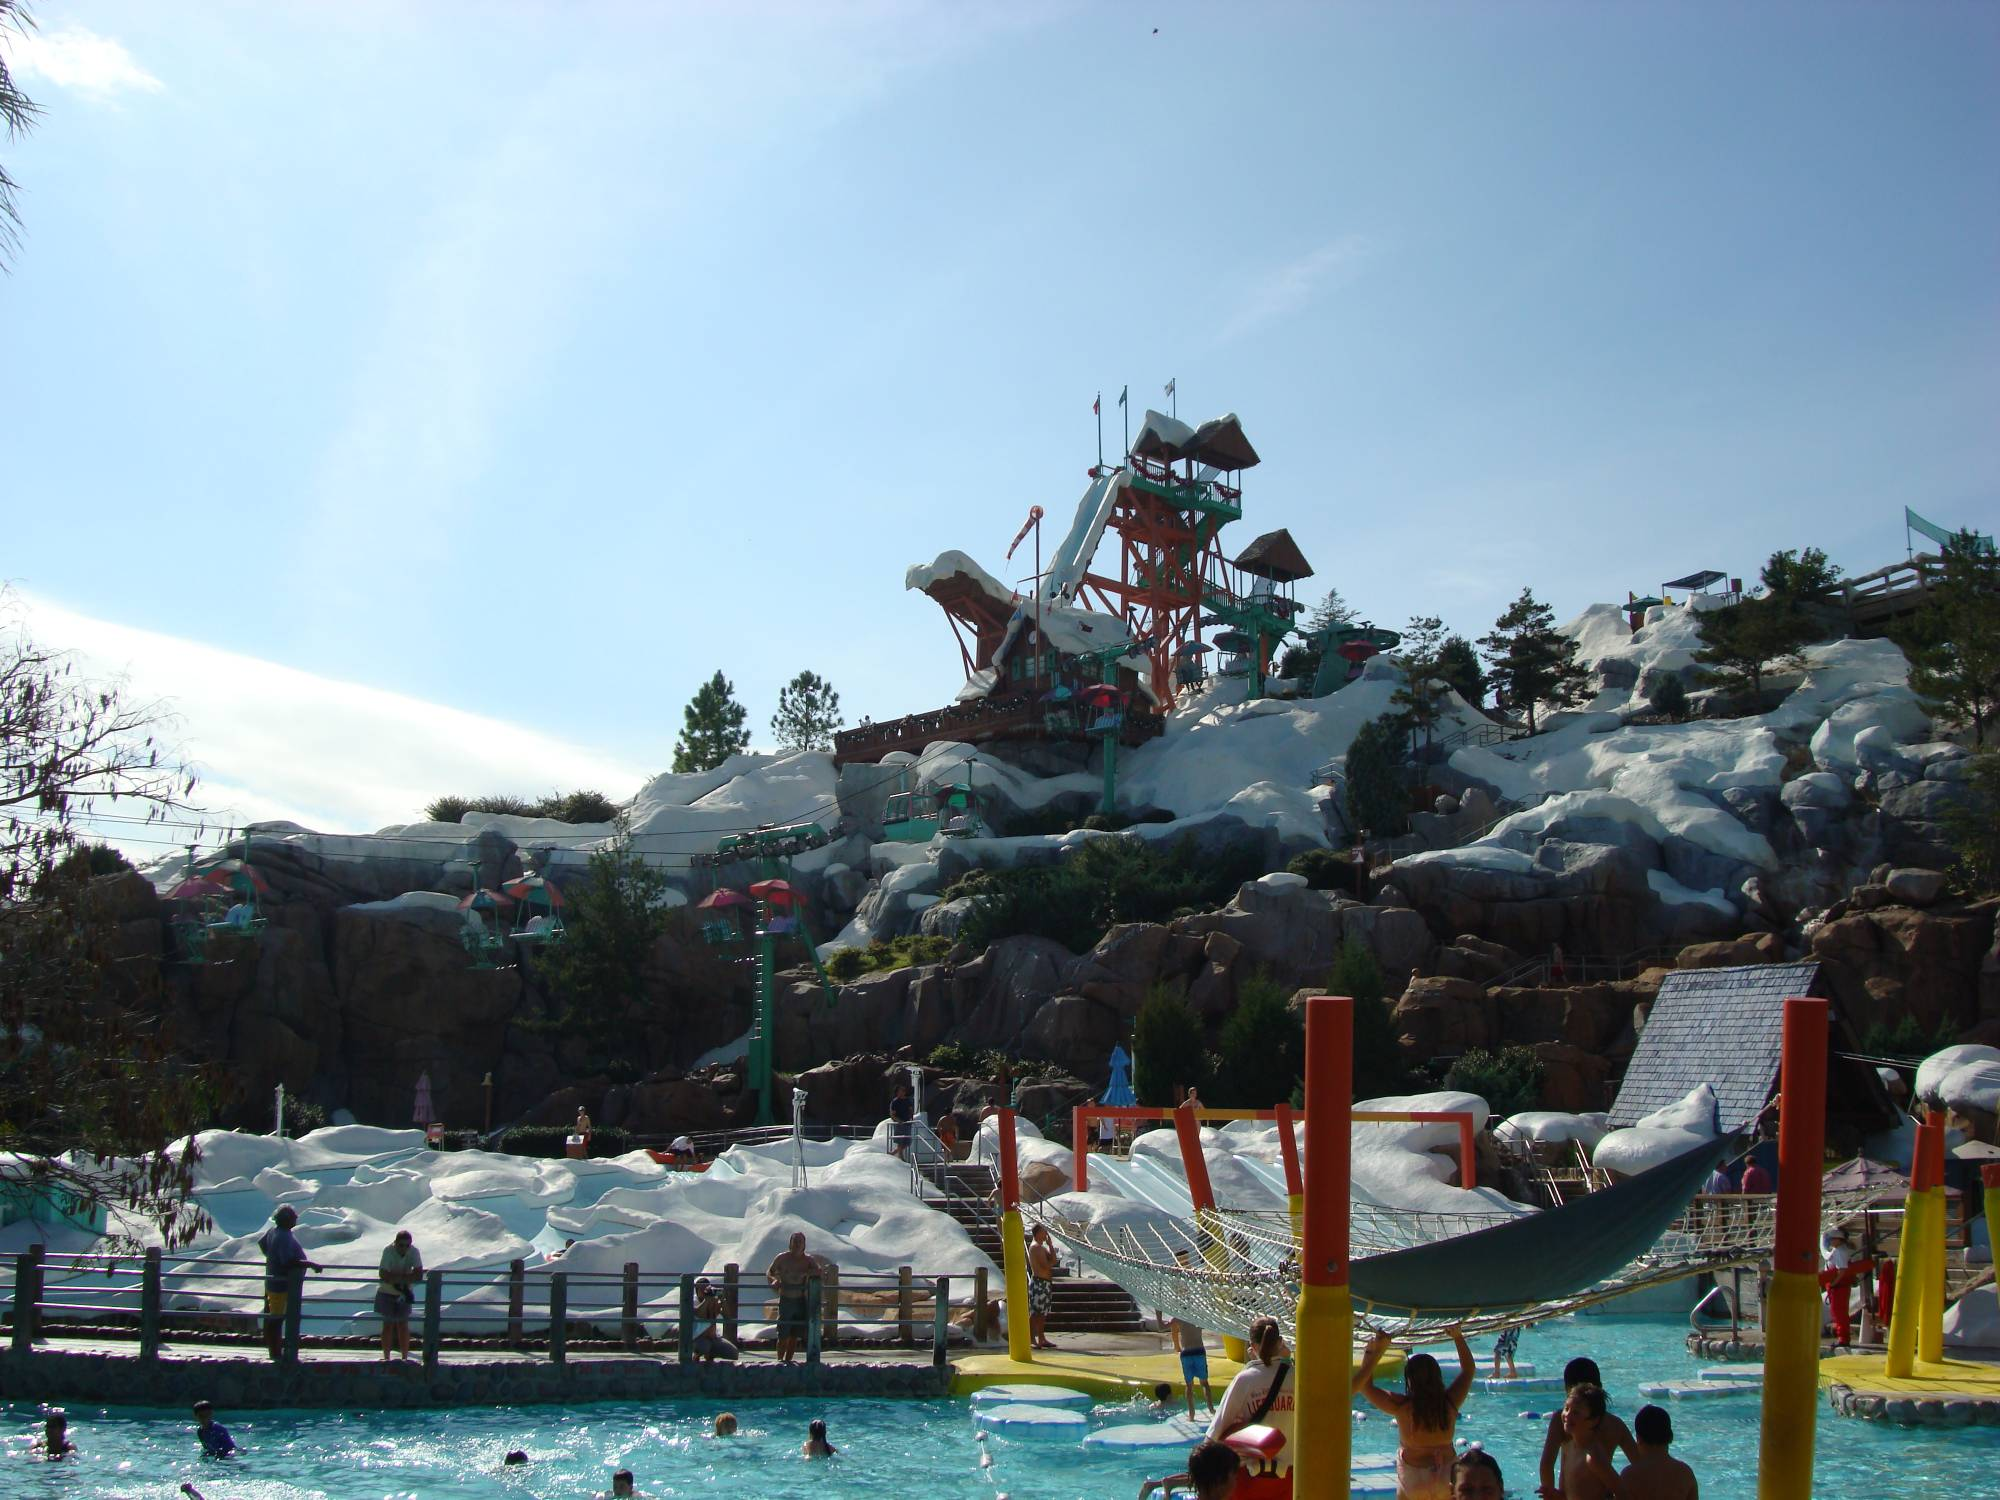 Chill out at Blizzard Beach at Walt Disney World | PassPorter.com